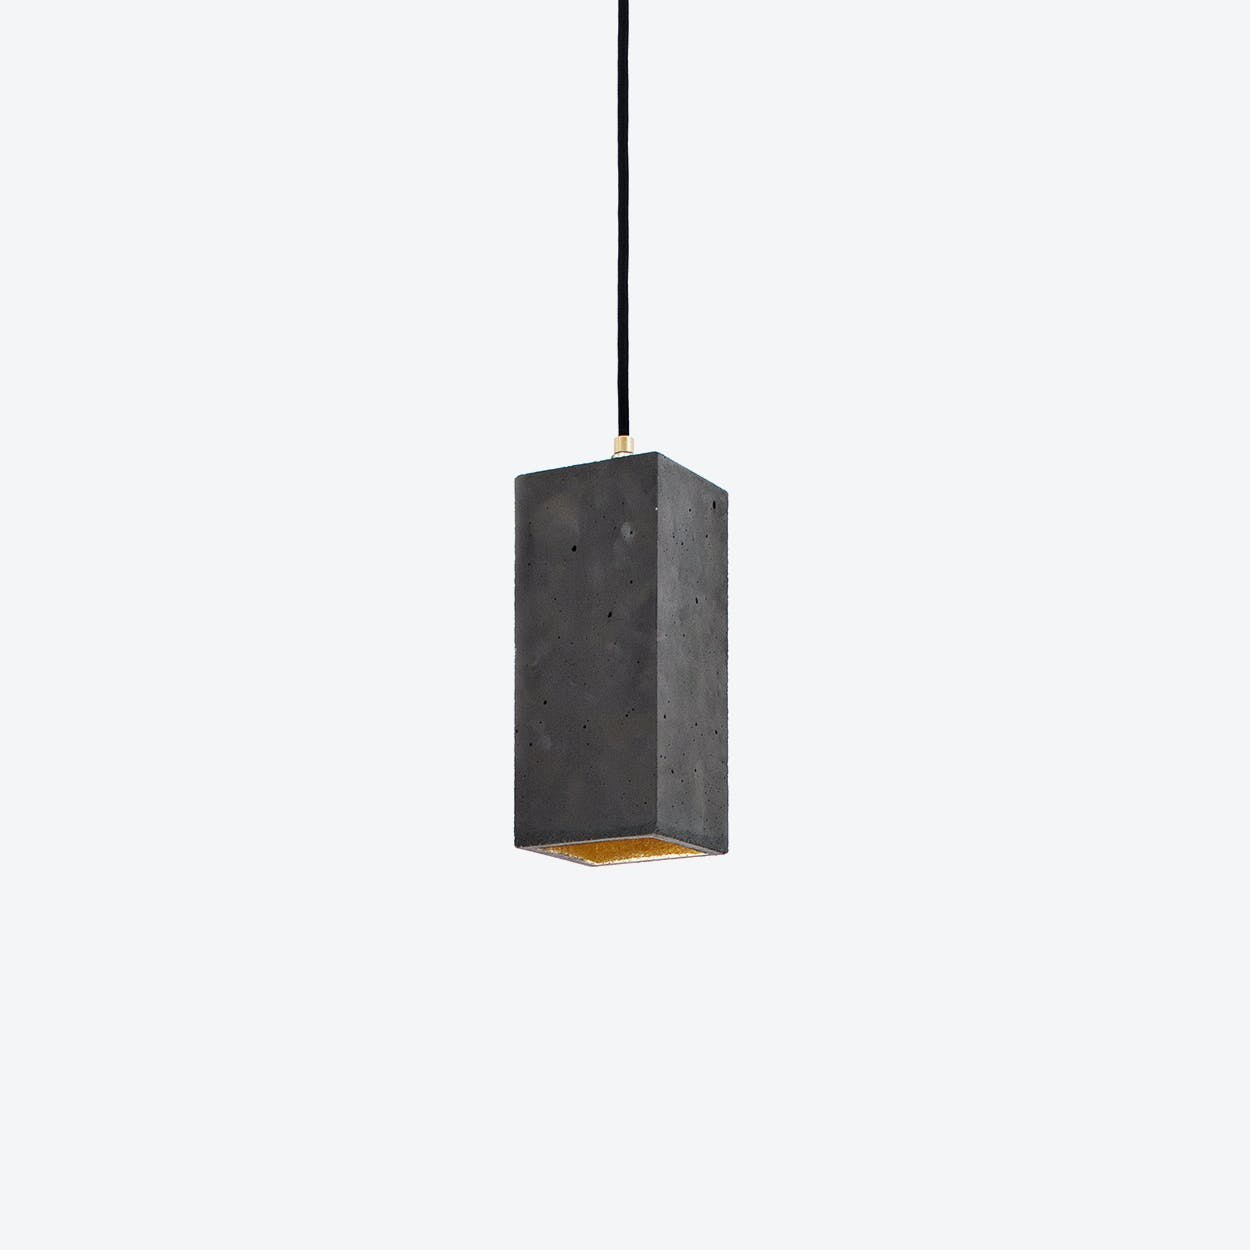 Concrete Pendant Light Retangular B2 in Dark Grey and Gold